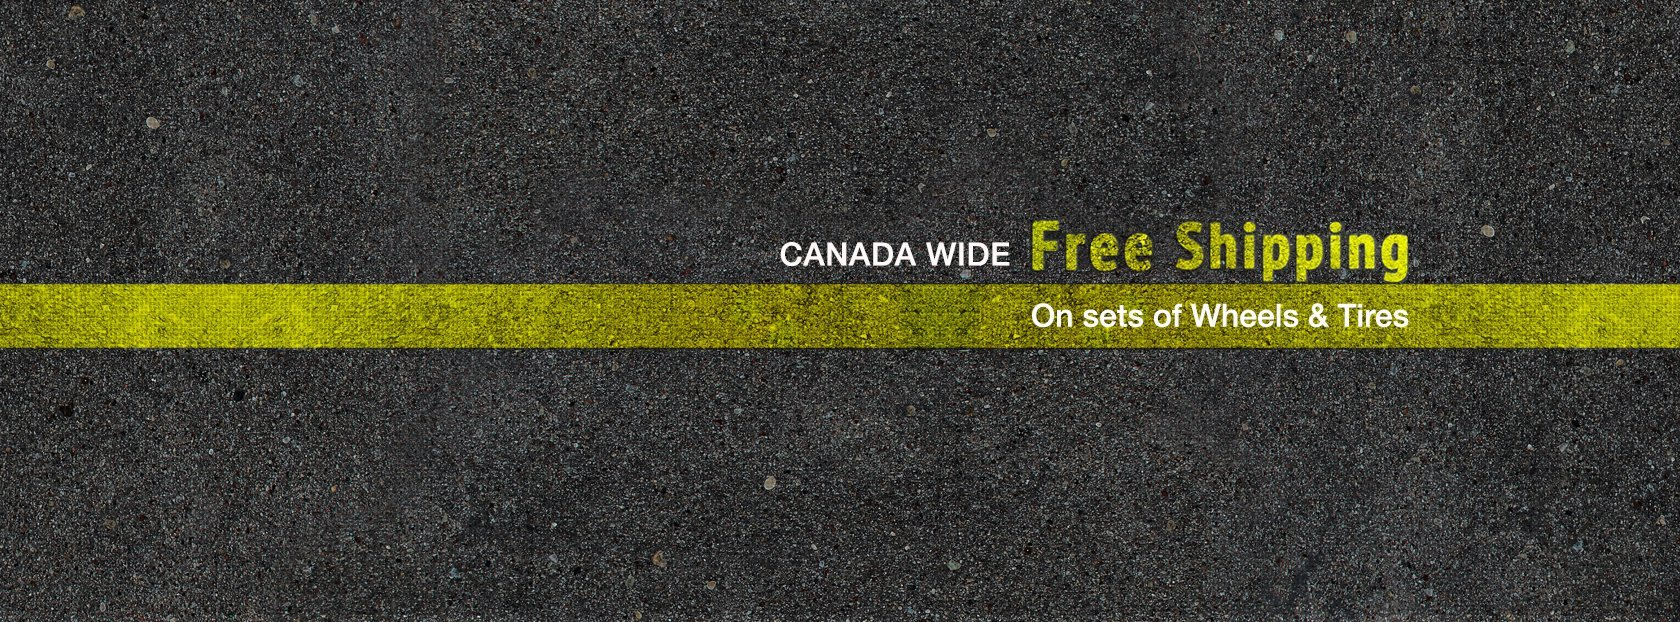 https://www.canadawheels.ca/shipping-policy